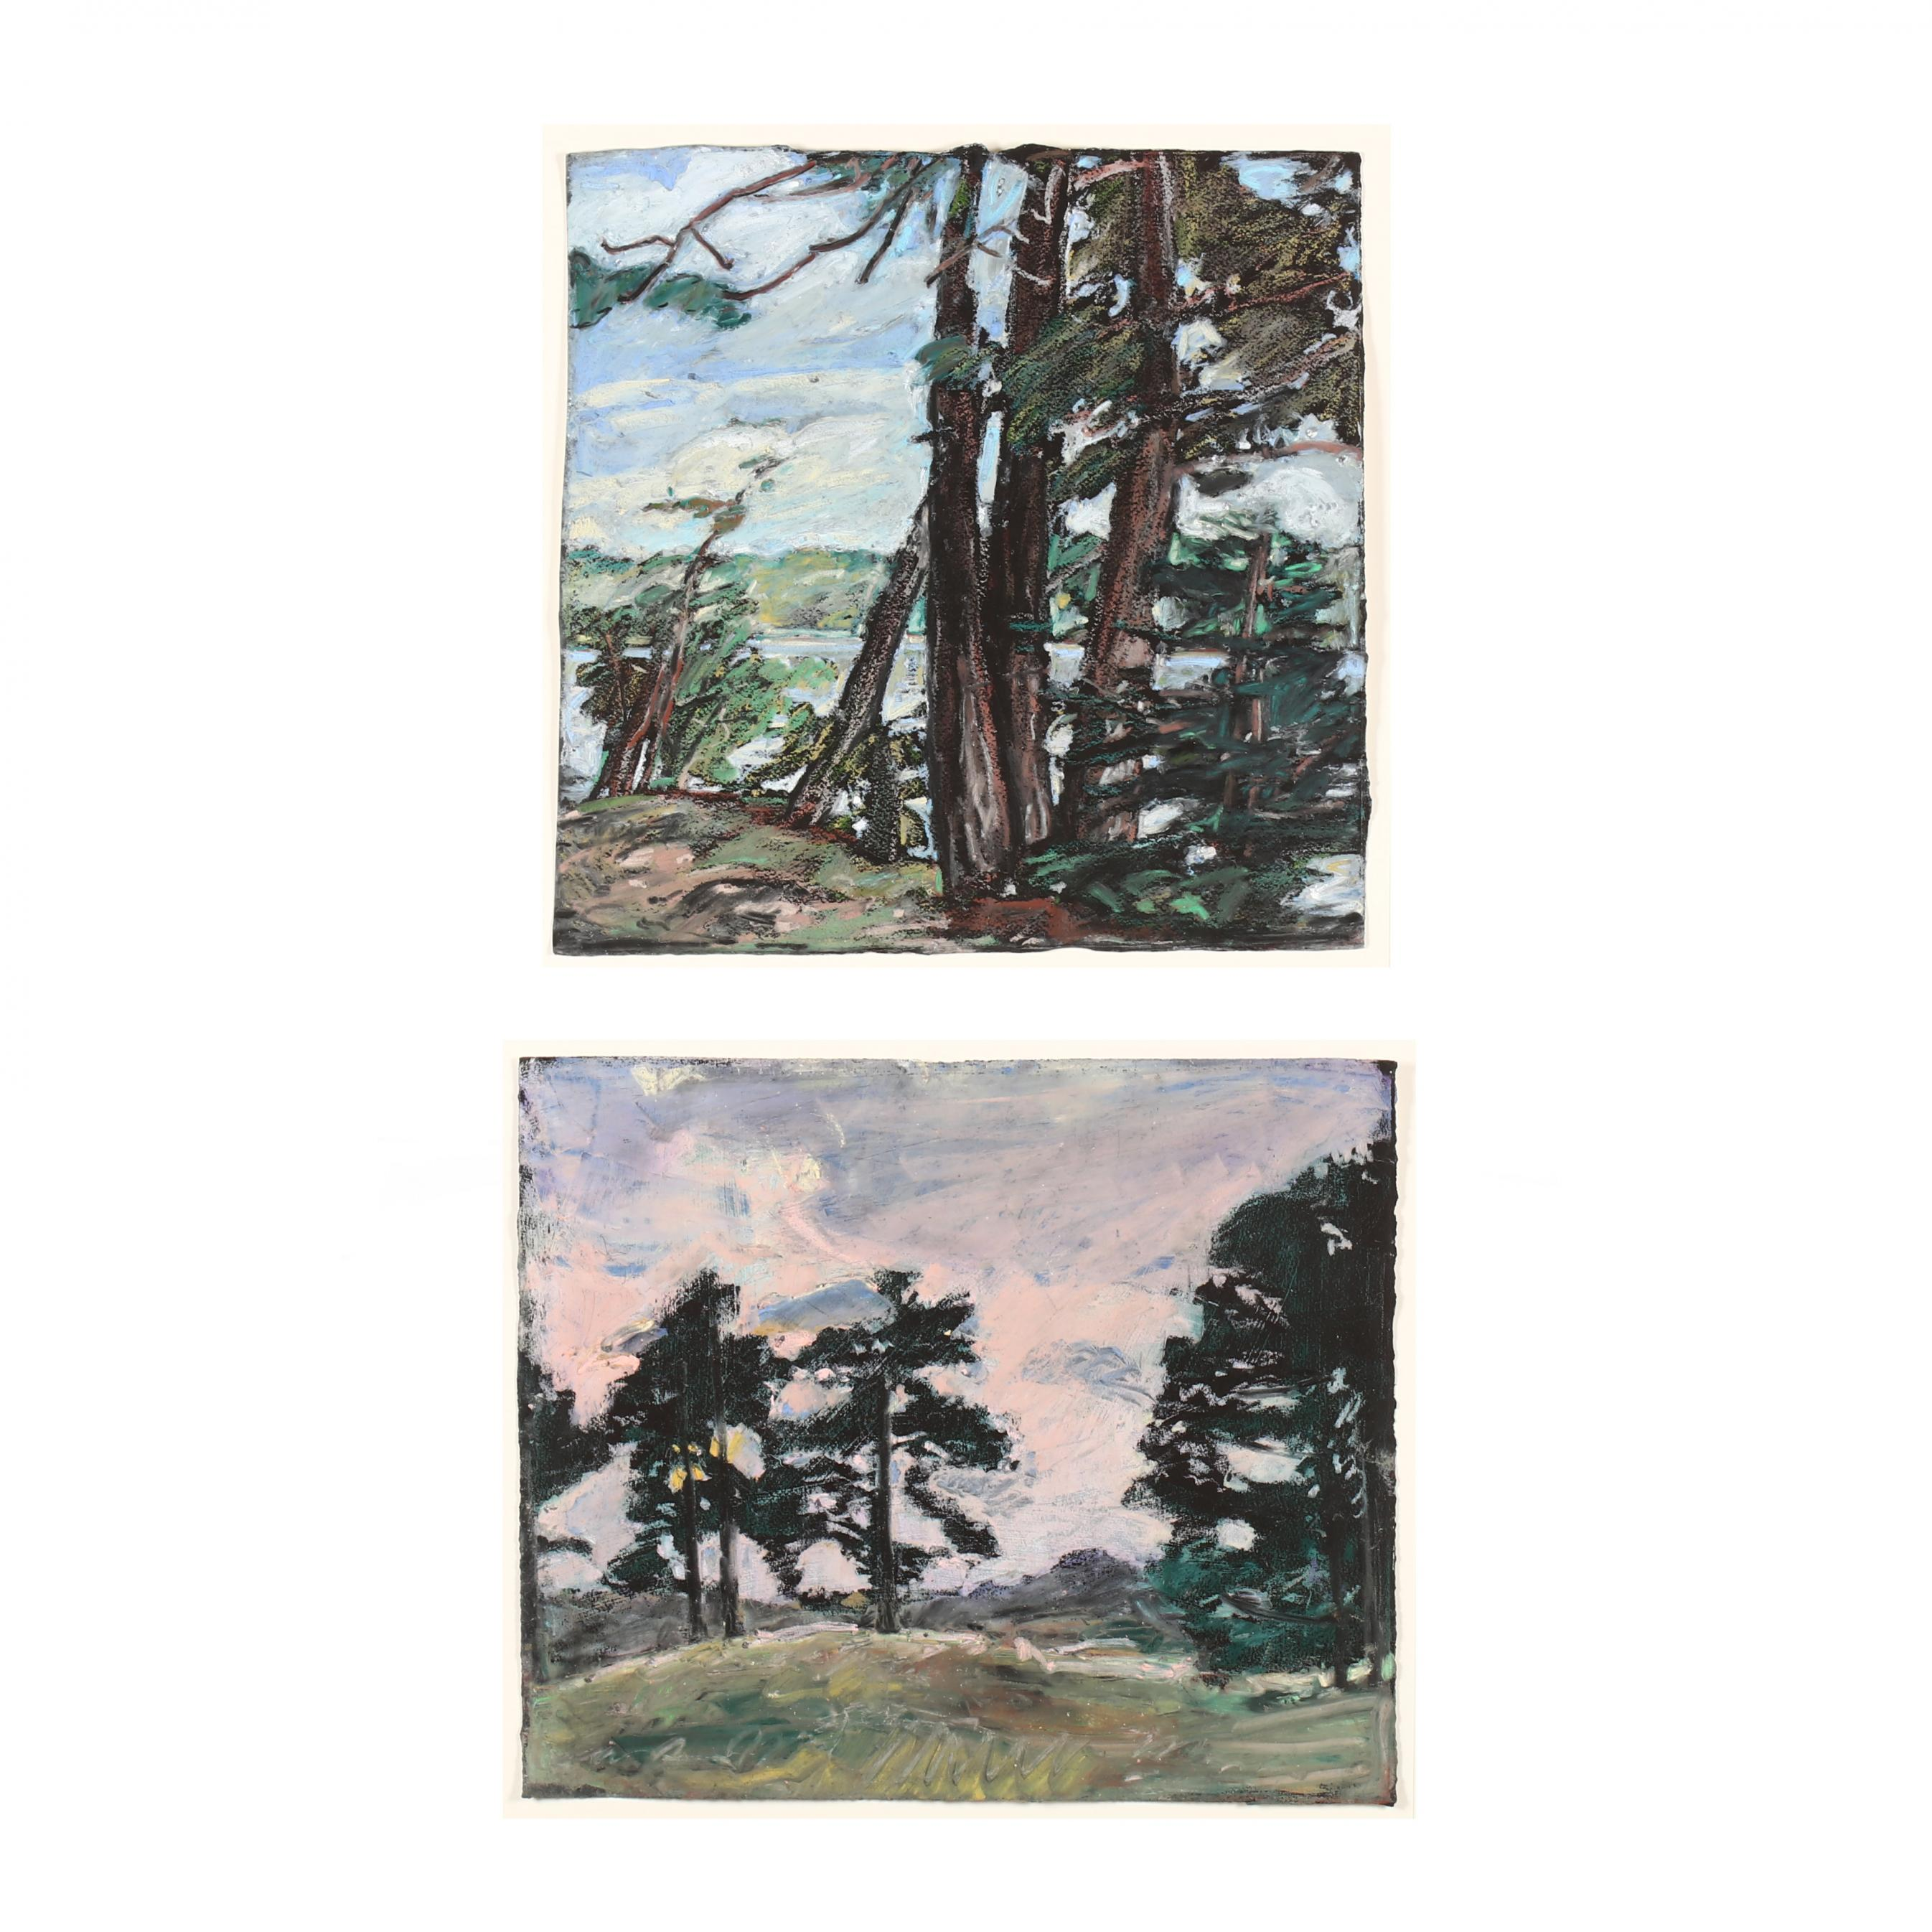 daisy-craddock-tn-ny-b-1949-two-original-landscape-paintings